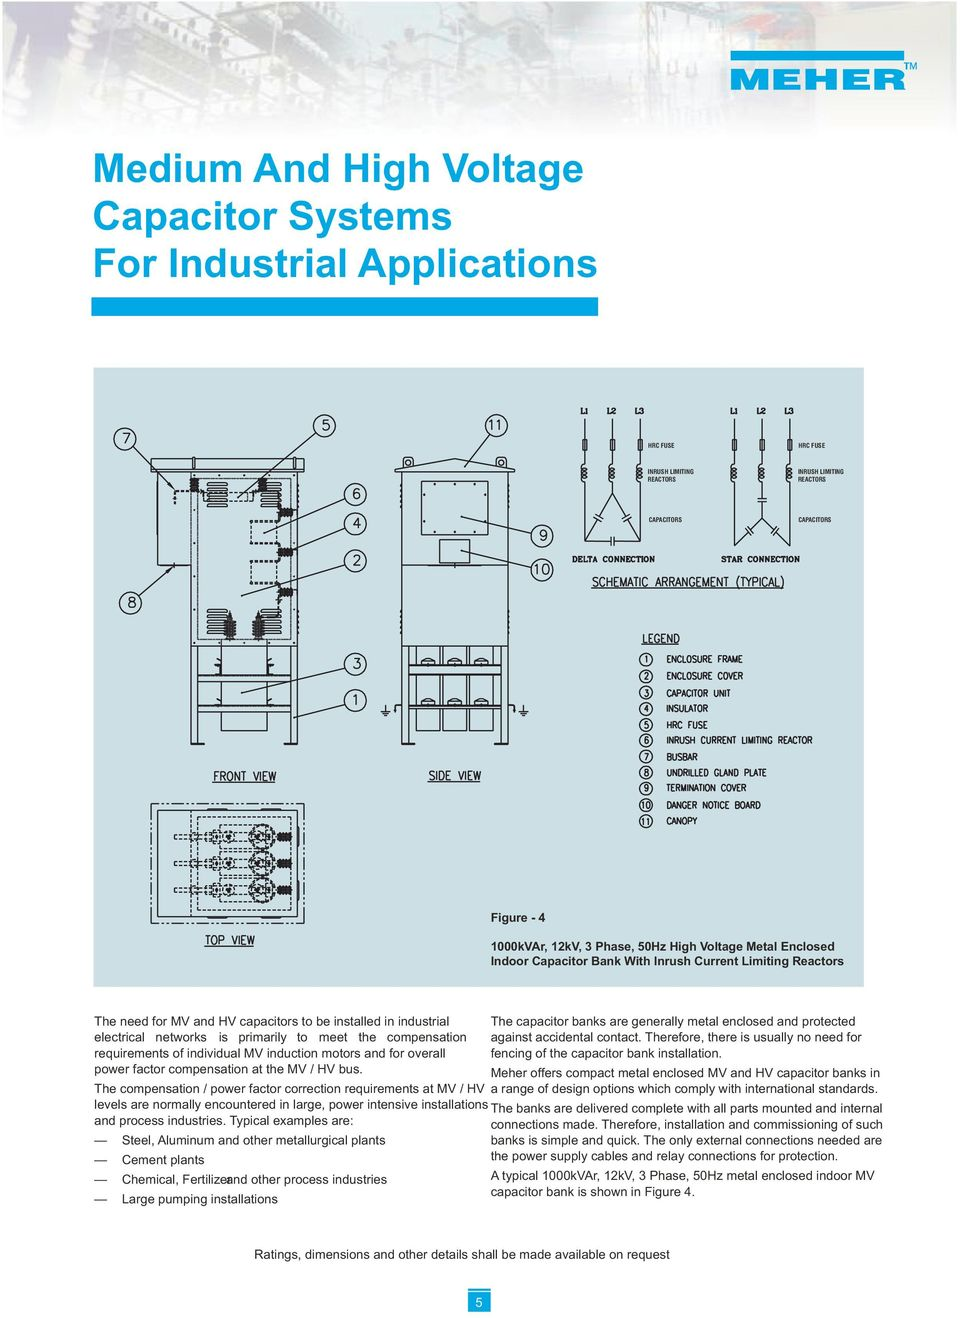 MEDIUM AND HIGH VOLTAGE CAPACITORS, CAPACITOR BANKS AND SYSTEMS - PDF